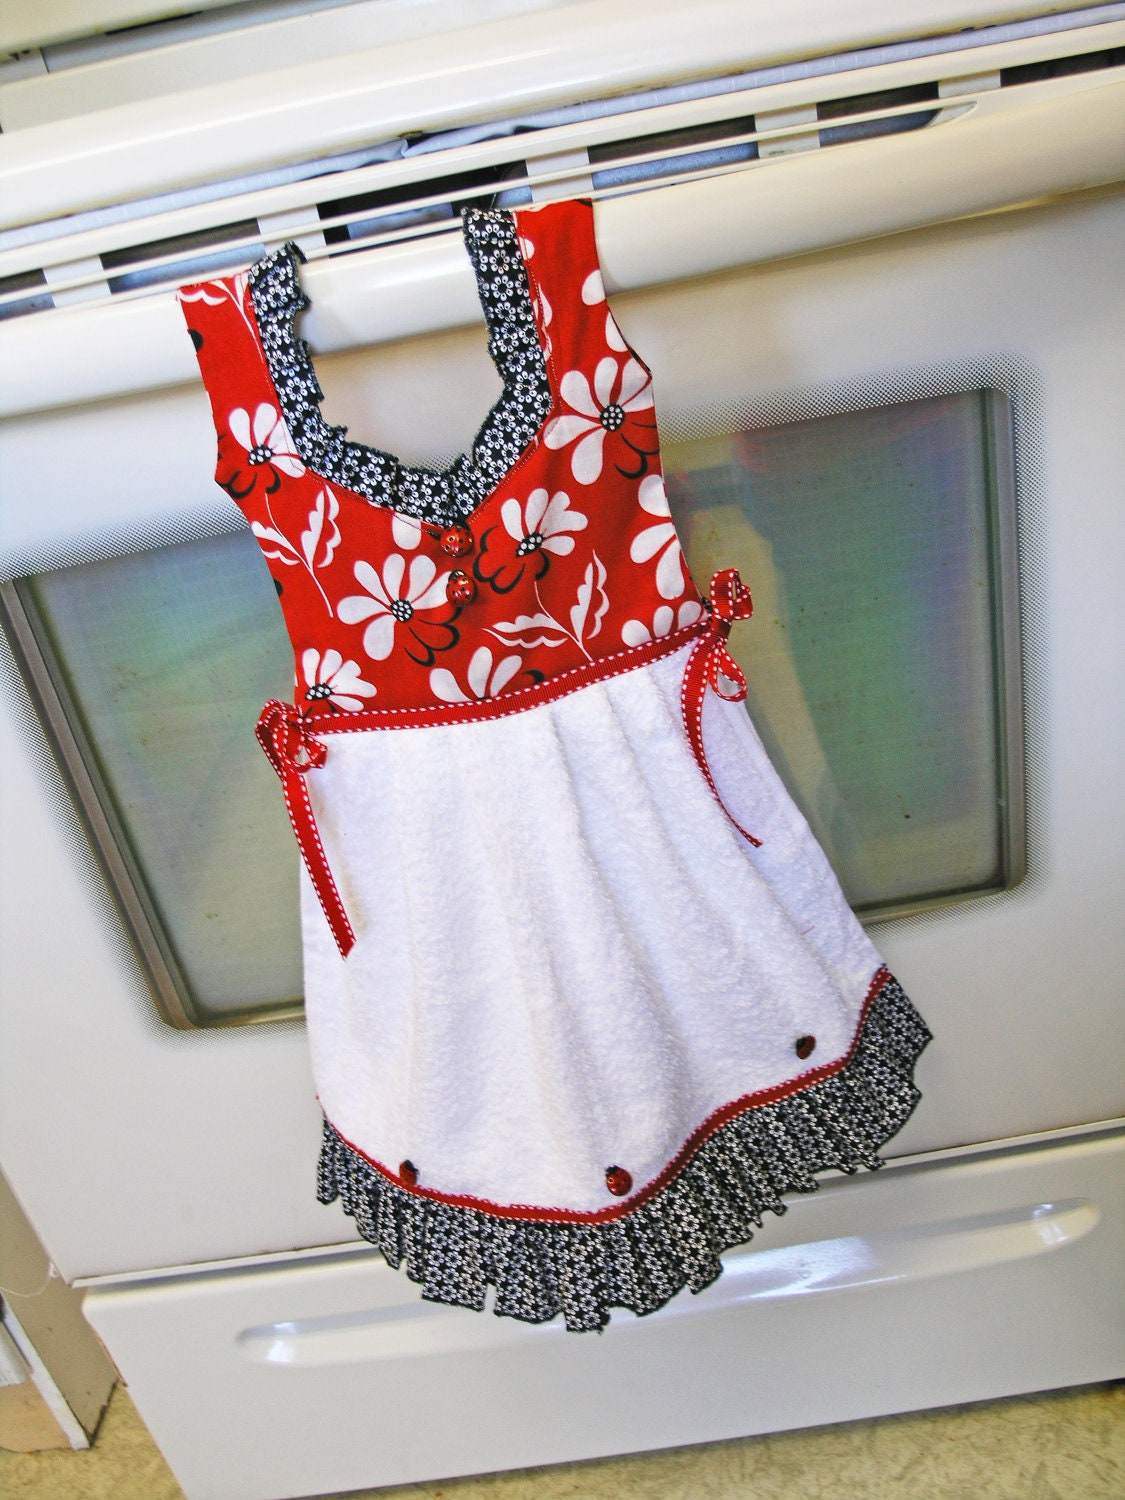 dish towel dress in mod red black and white flowers